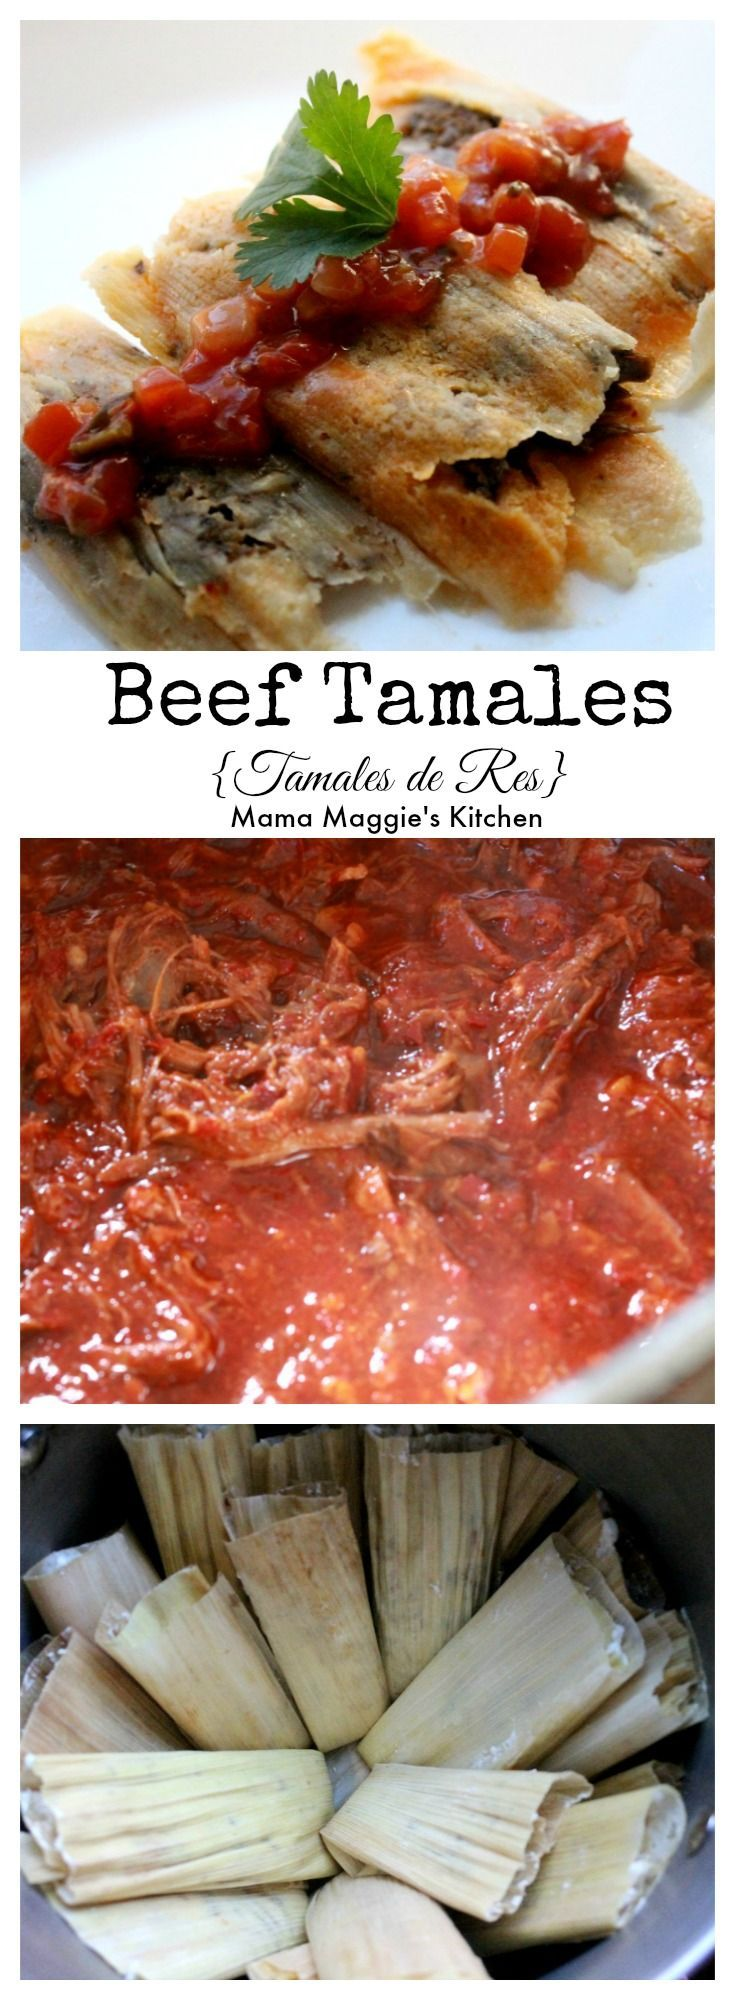 Beef tamales are amazingly delicious. Meaty and with just the right about of spicy flavors. They are a classic Mexican food that will be a favorite until the end of time. by Mama Maggie's Kitchen